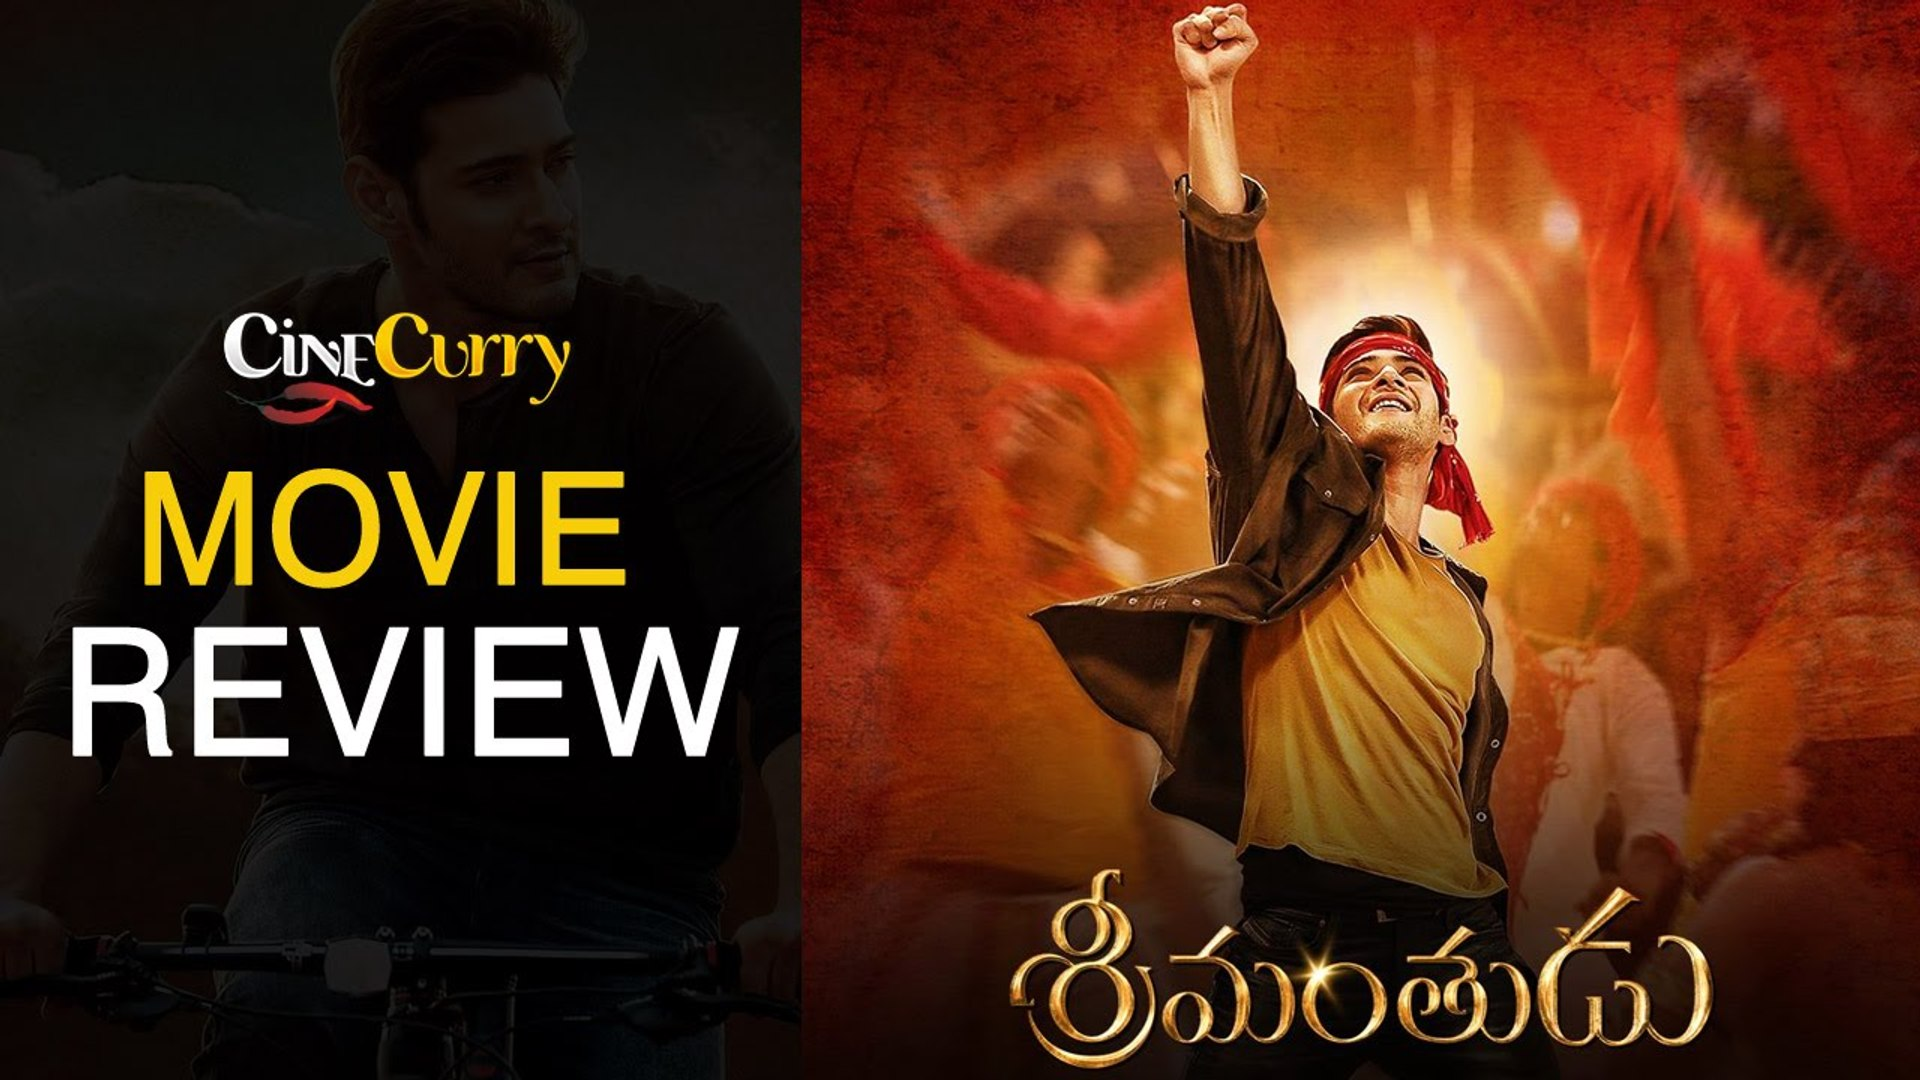 Srimanthudu | Full Movie Review | Mahesh Babu, Shruti Haasan